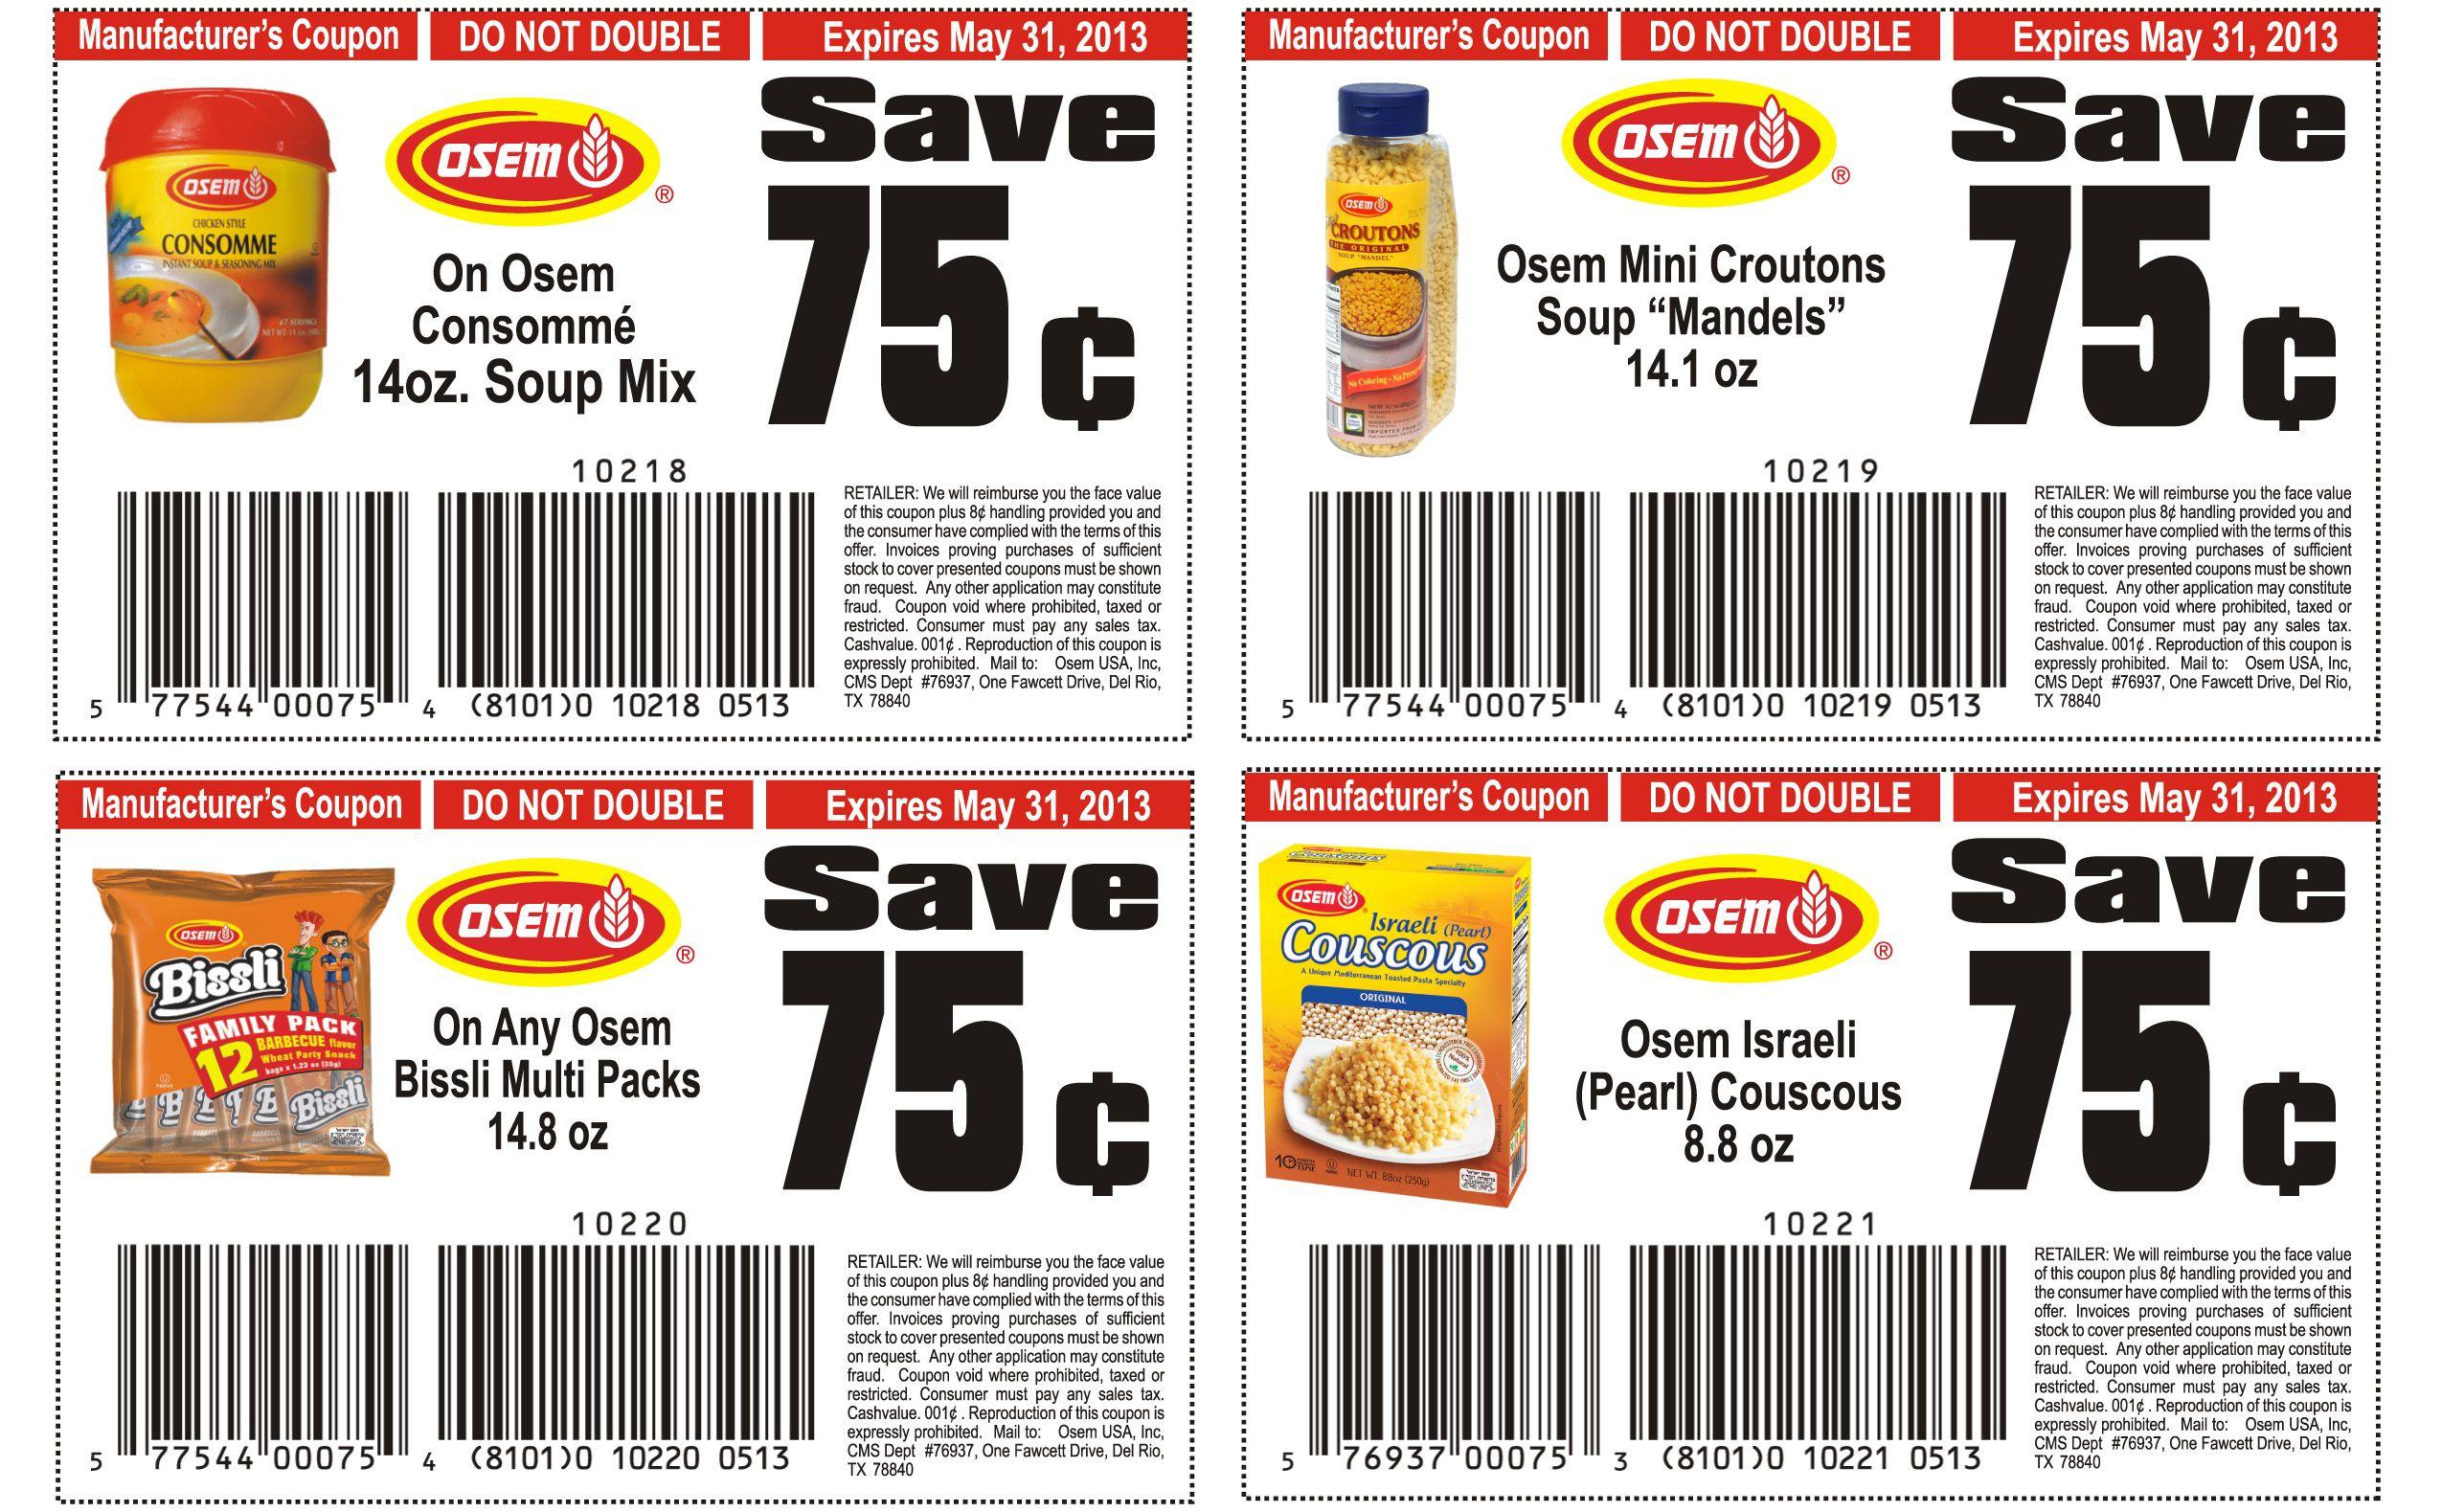 Food Coupons To Print | Osem List Of Healthy Food Printable Coupons - Free Printable Coupons For Food